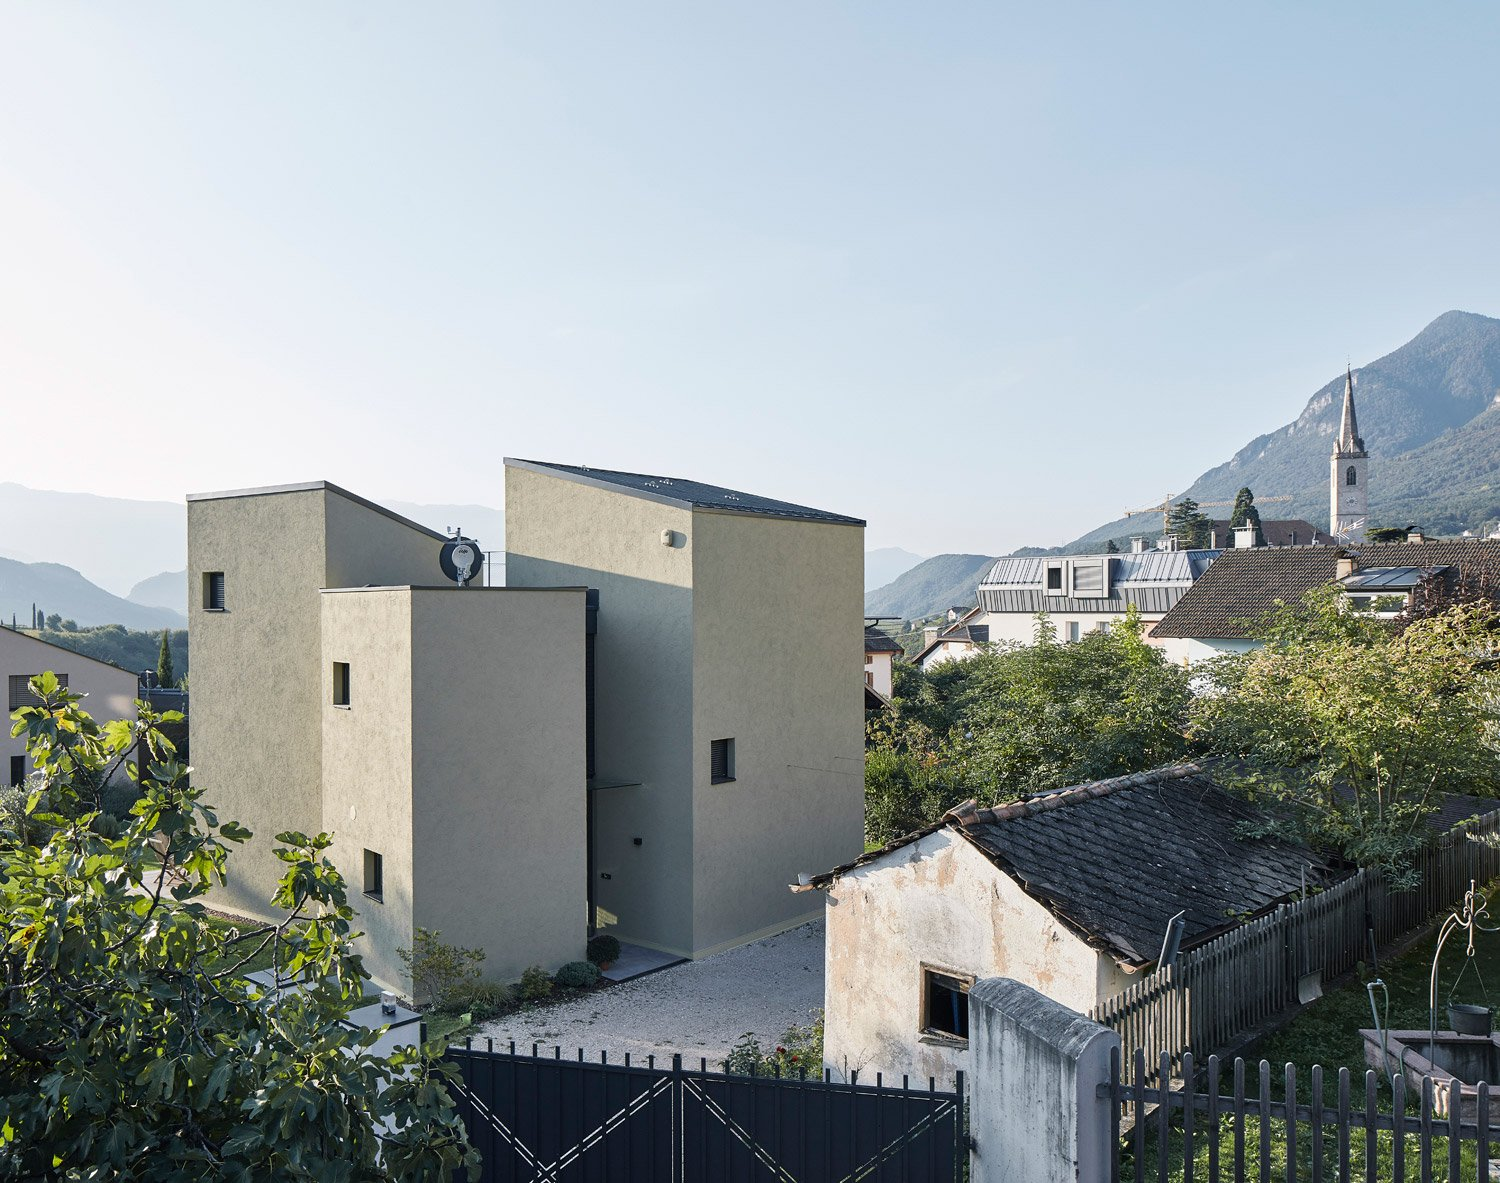 House D consists of four tower-like volumes David Schreyer